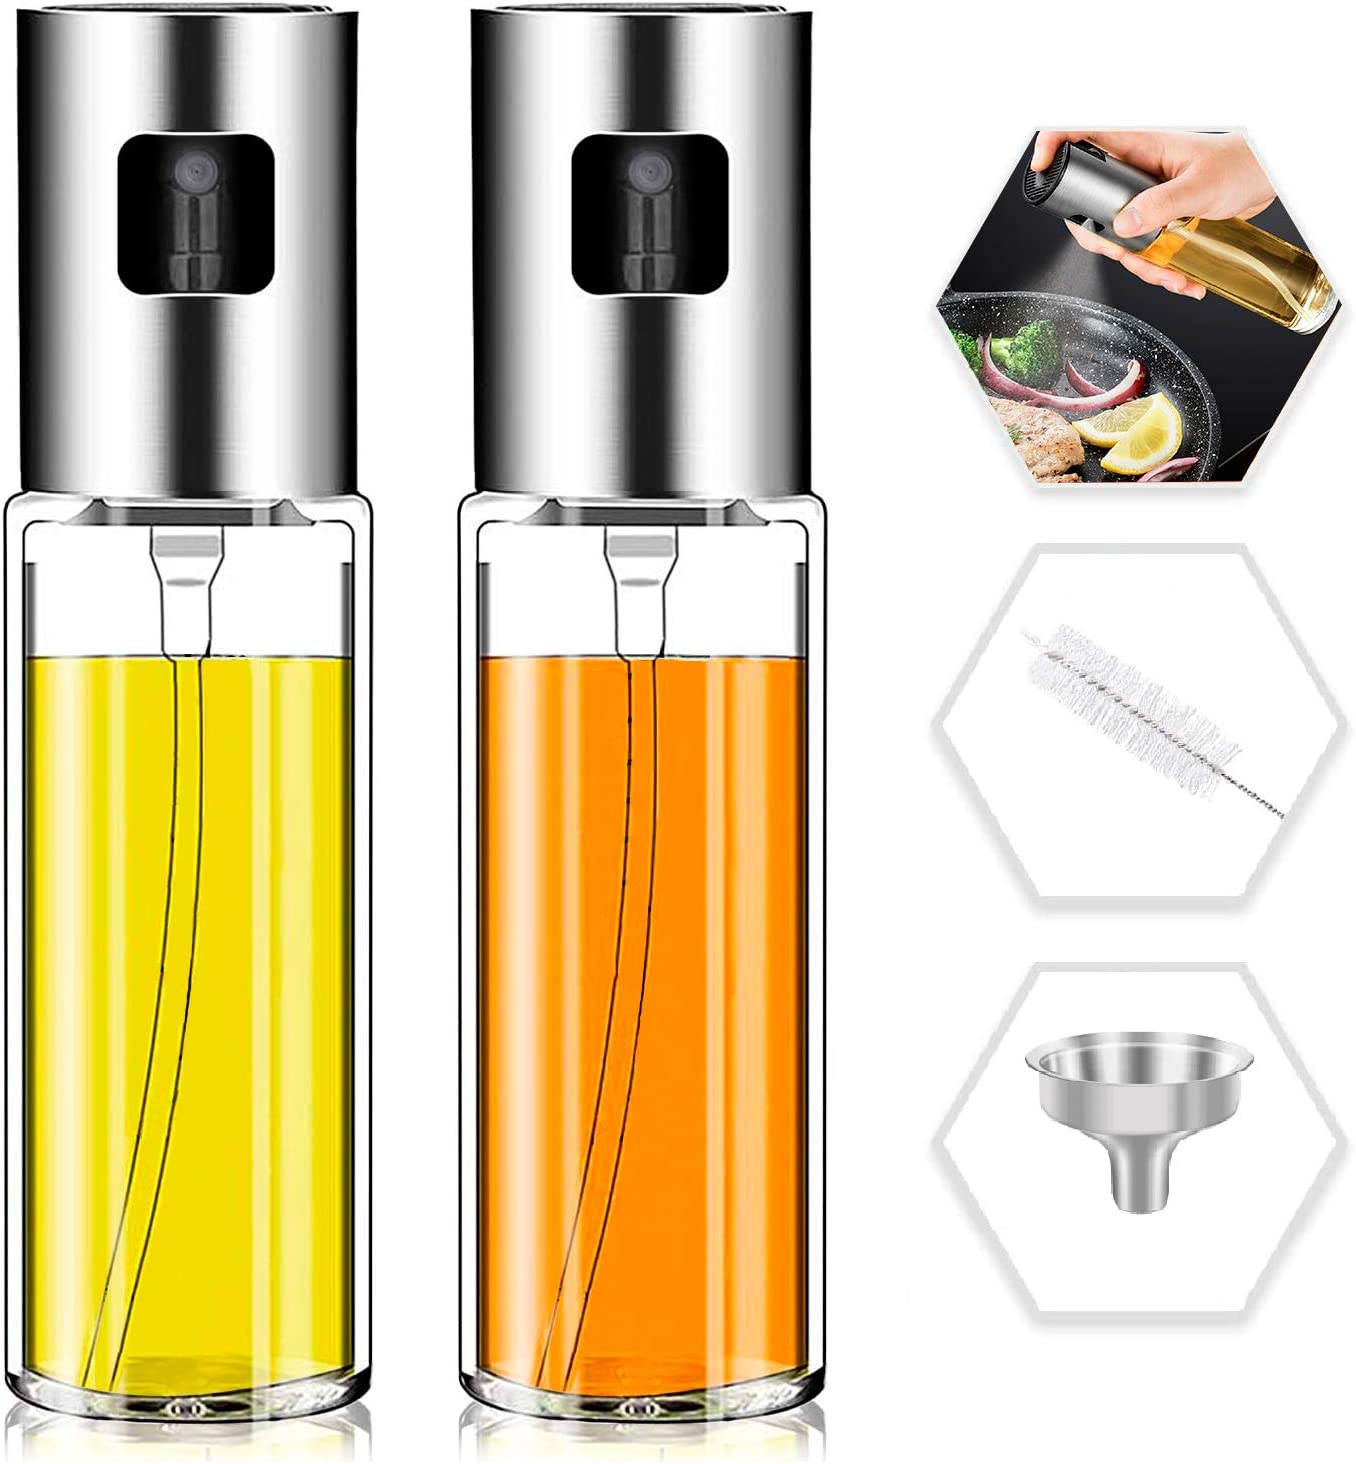 Details about  /Chicken Turkey Baster Cooking Oil Dropper BBQ Food Flavour With Oil brush to nz